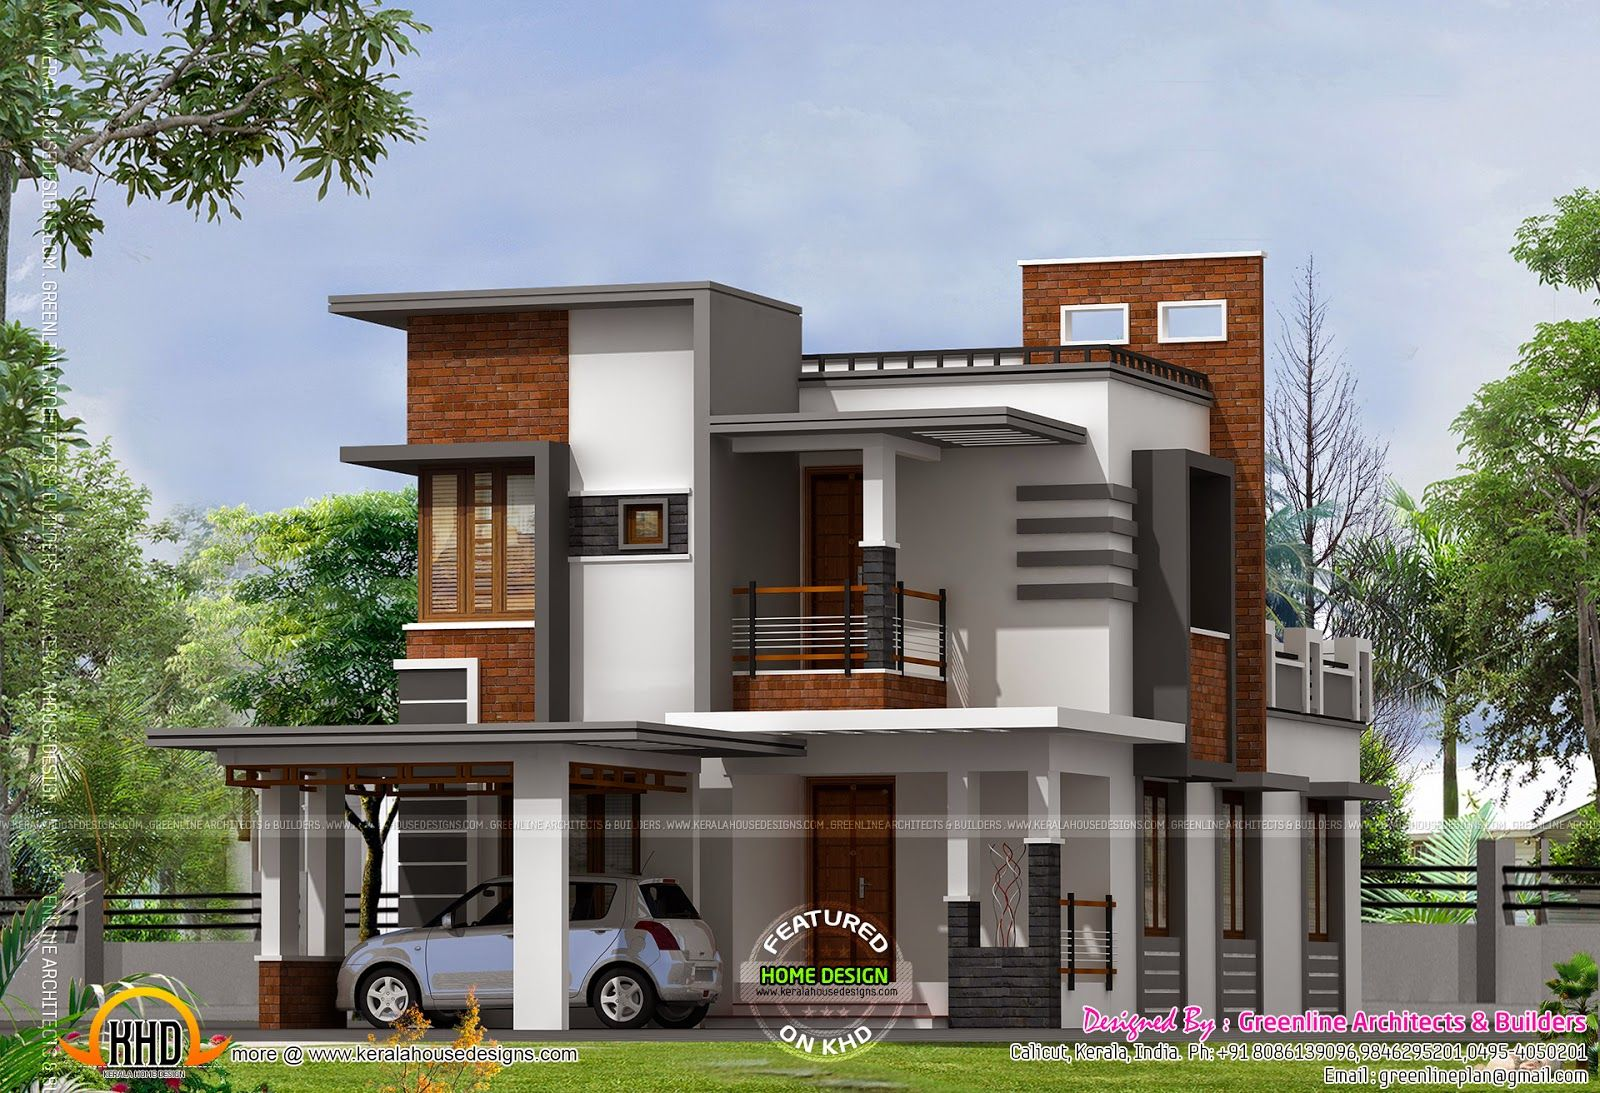 Low cost contemporary house house elevation indian for Contemporary house designs